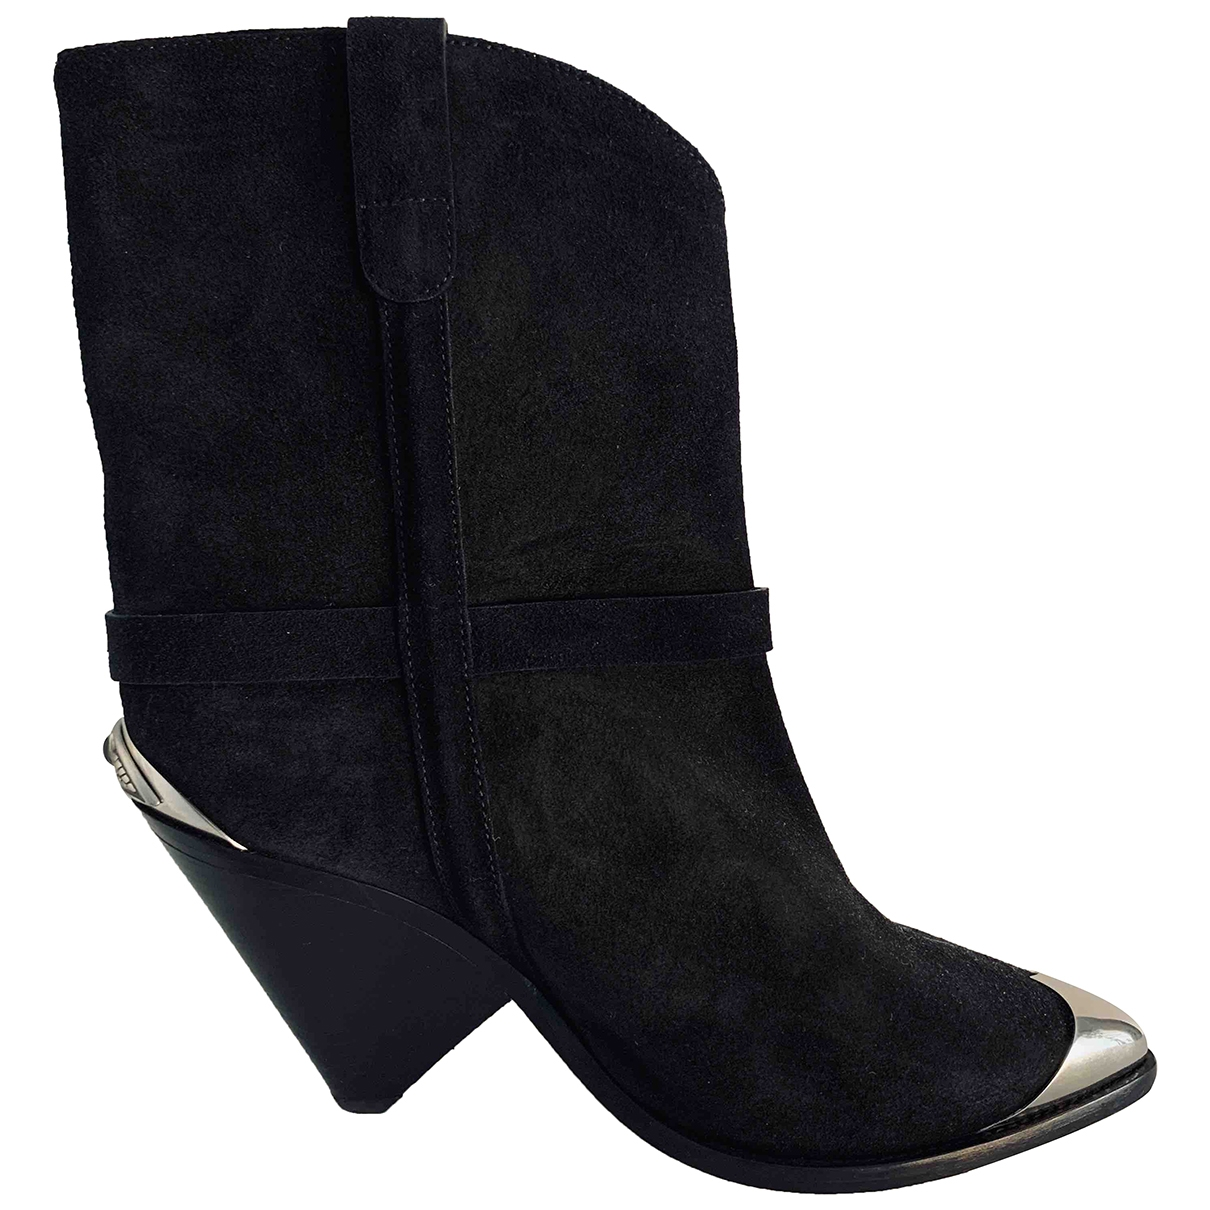 Isabel Marant Lamsy Black Leather Boots for Women 41 EU